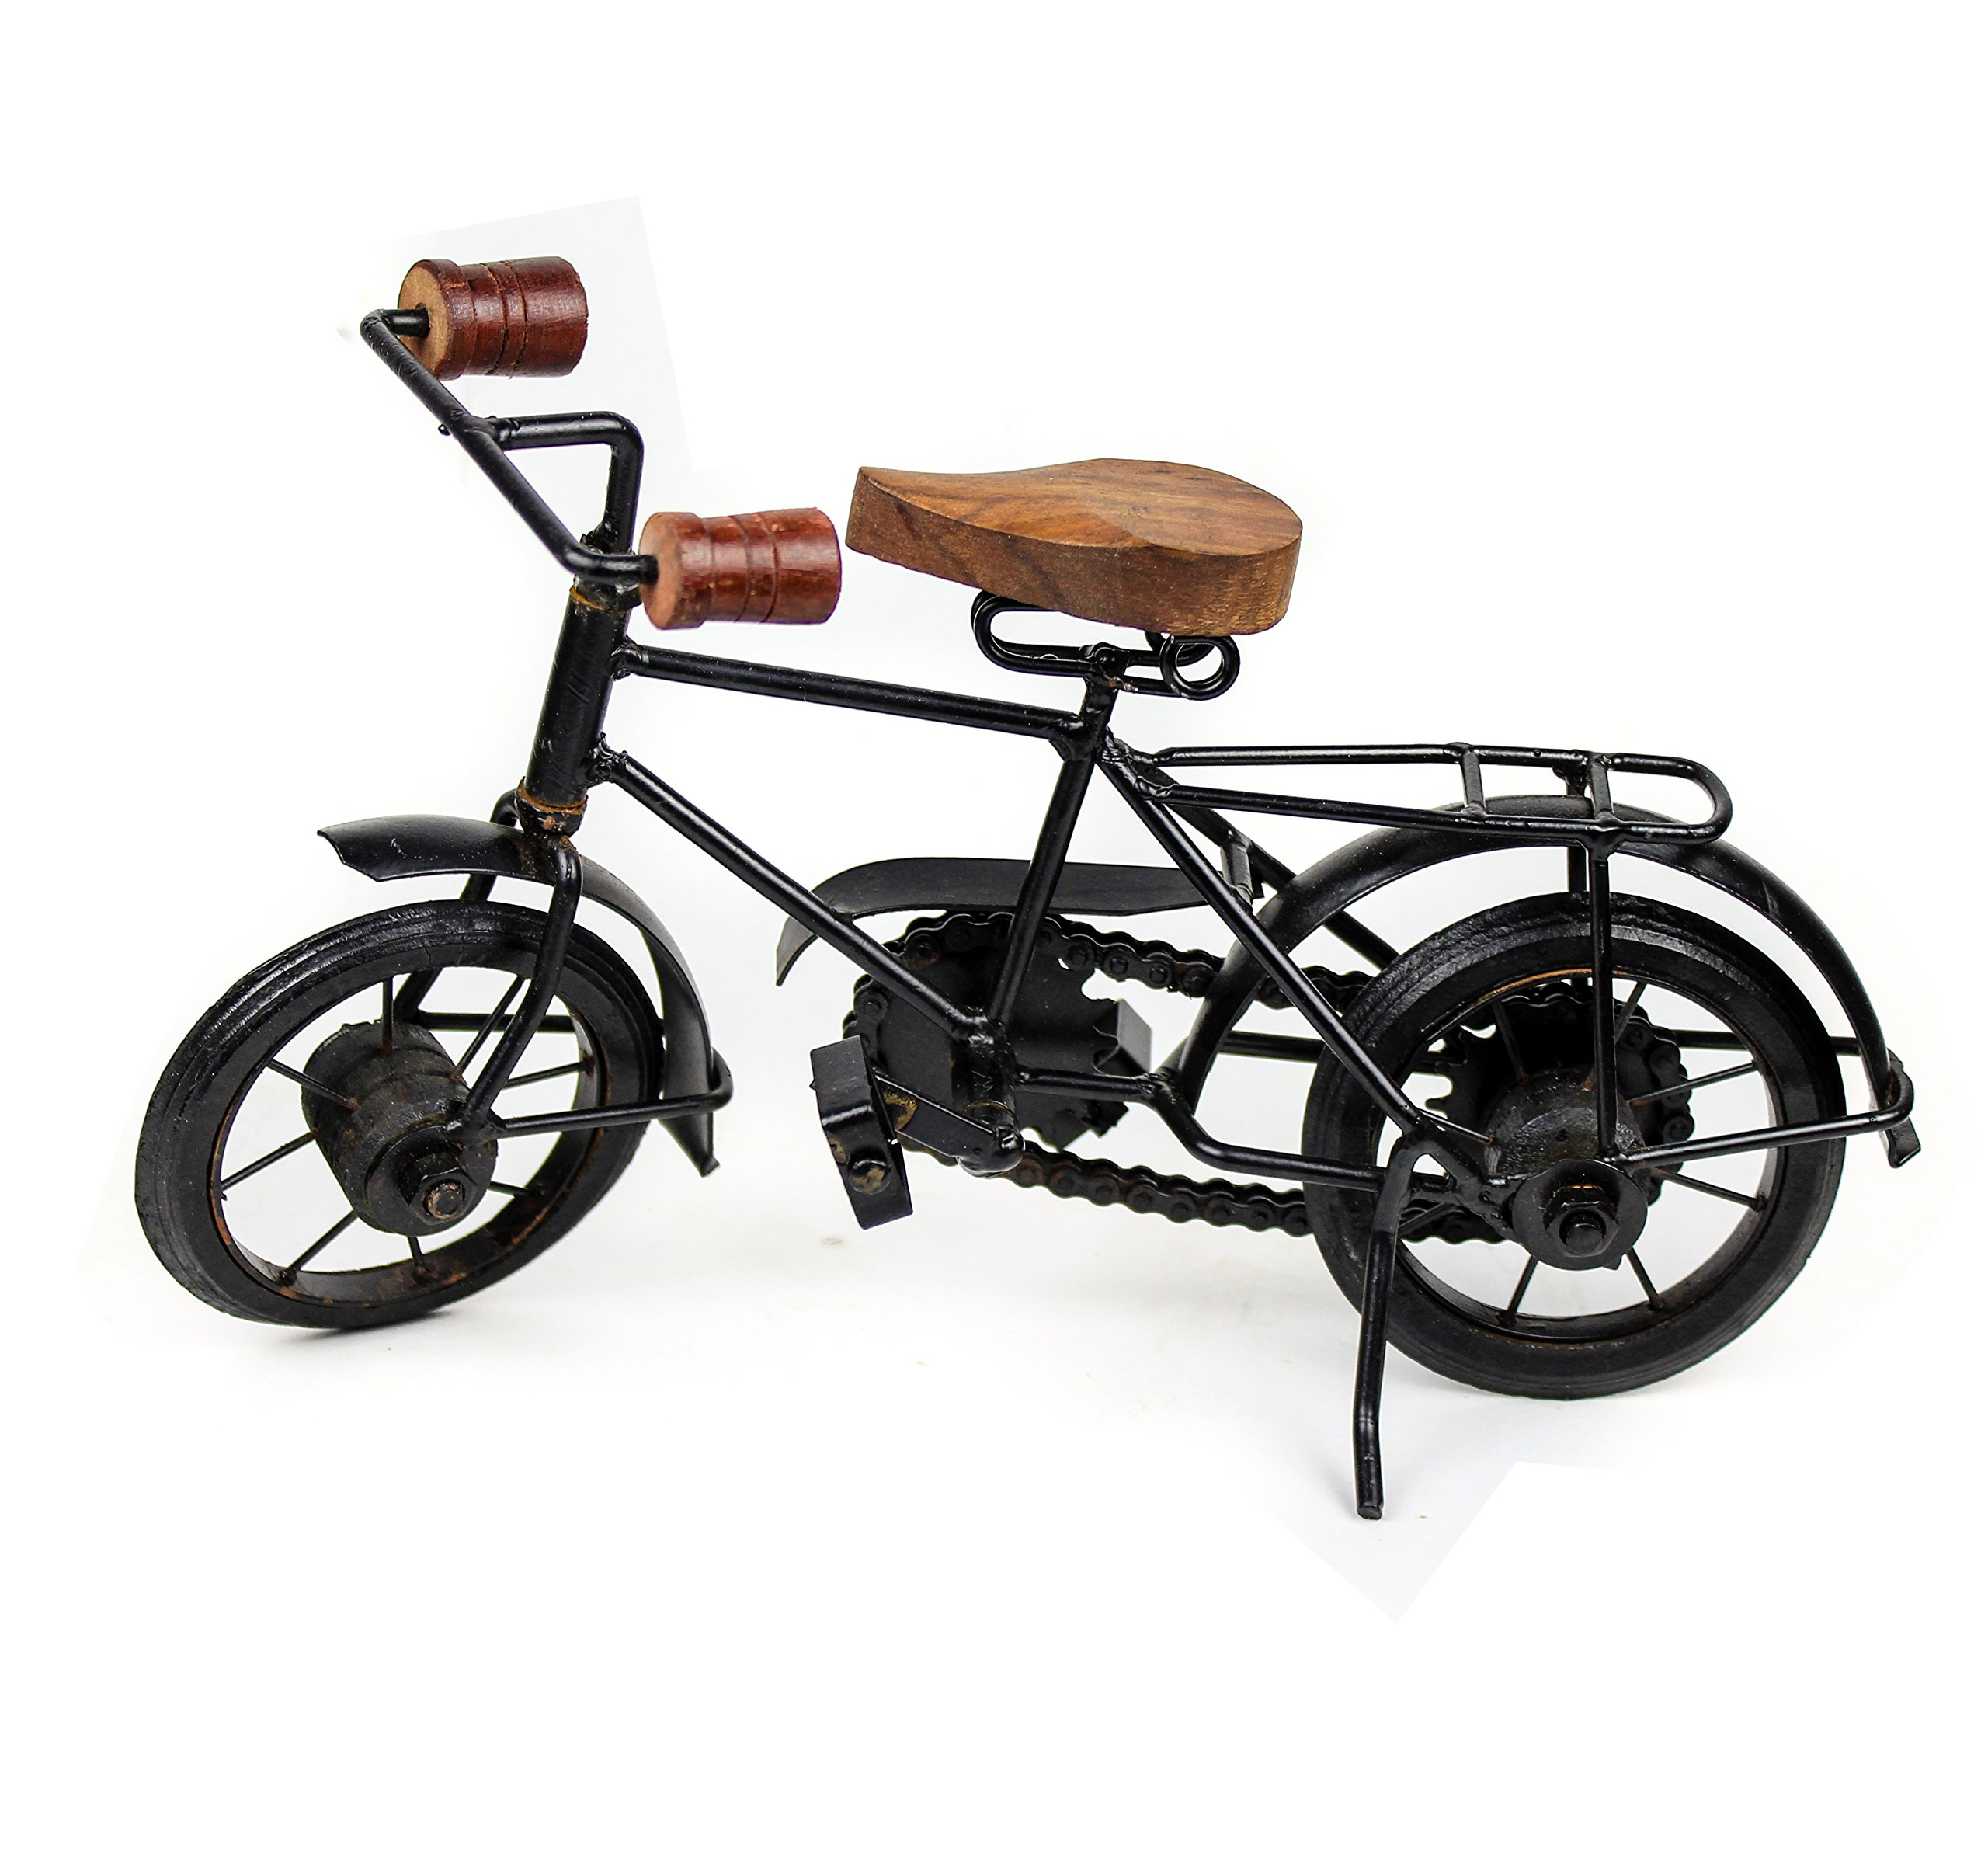 Nagina International Home Decor Iron Metal Crafted Beautiful Finger Bike | Table Decor Gifts Vehicle | Games Toy Cycle (Postman)